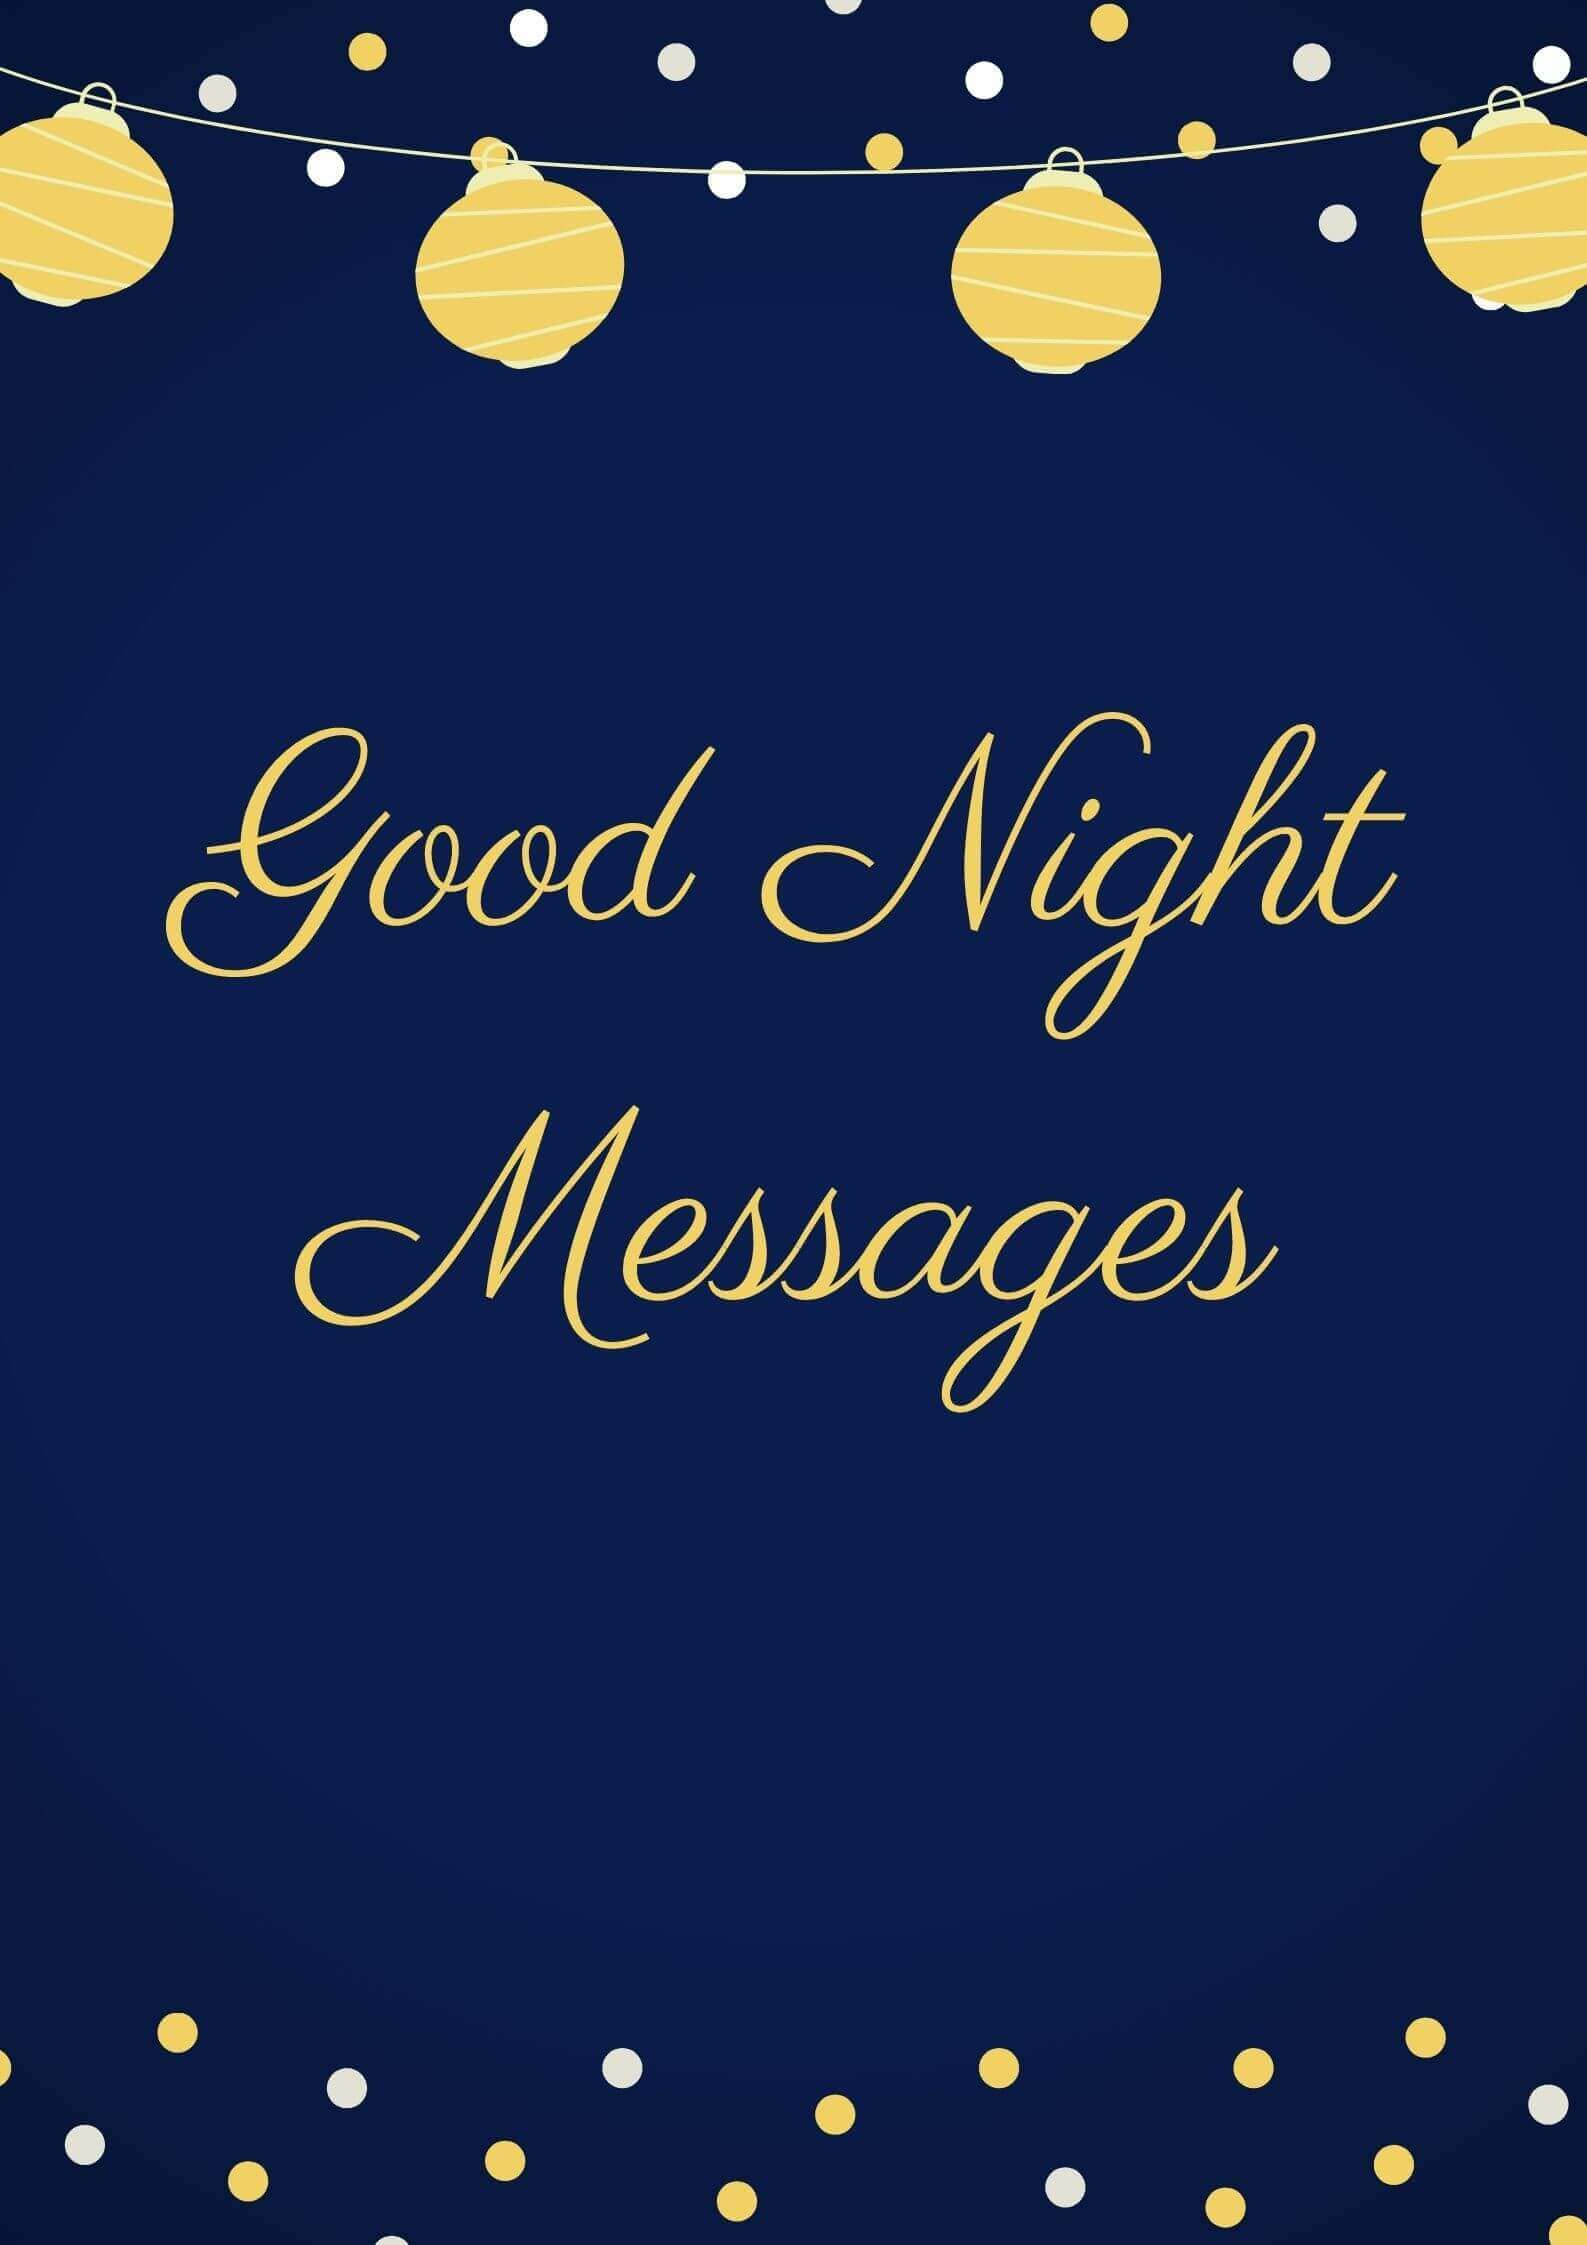 Good night Messages free image